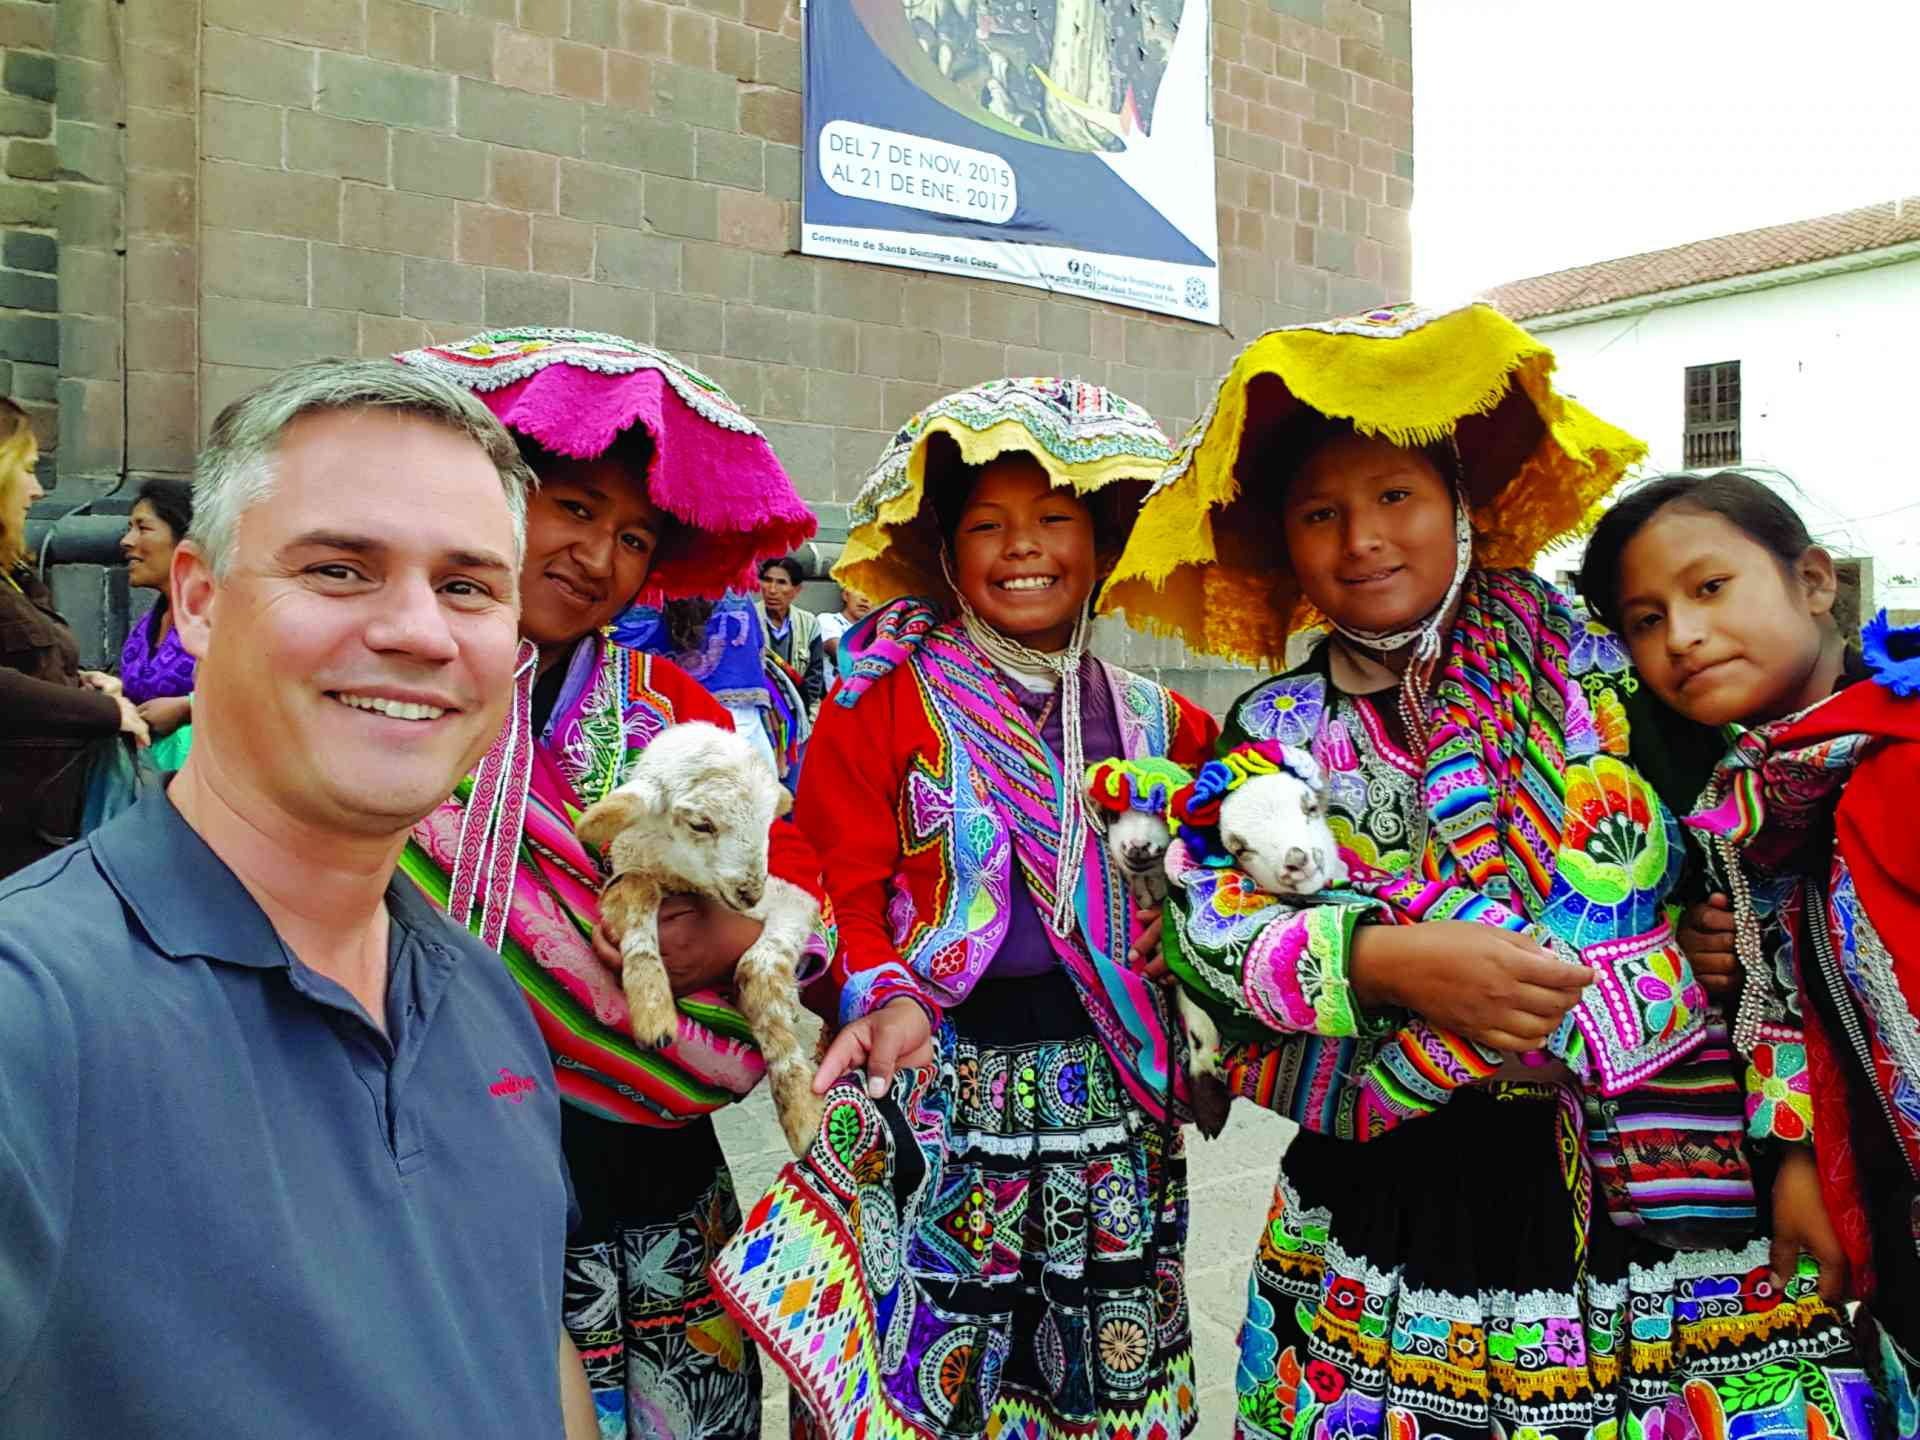 Locals in Peru with Dennis Bunnik